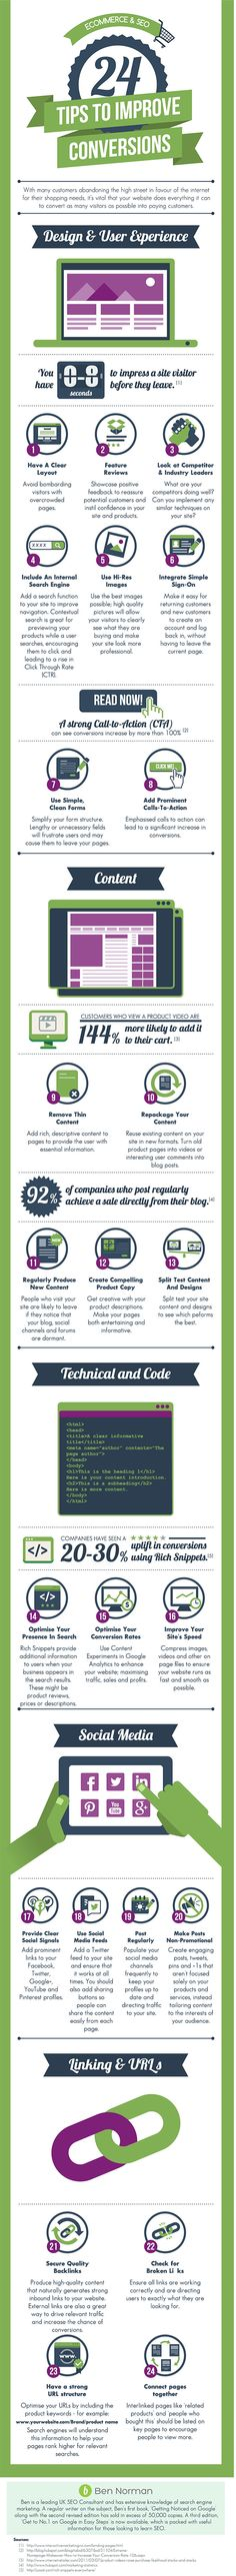 24 Ways to Make Your Website Better Than Your Competitors